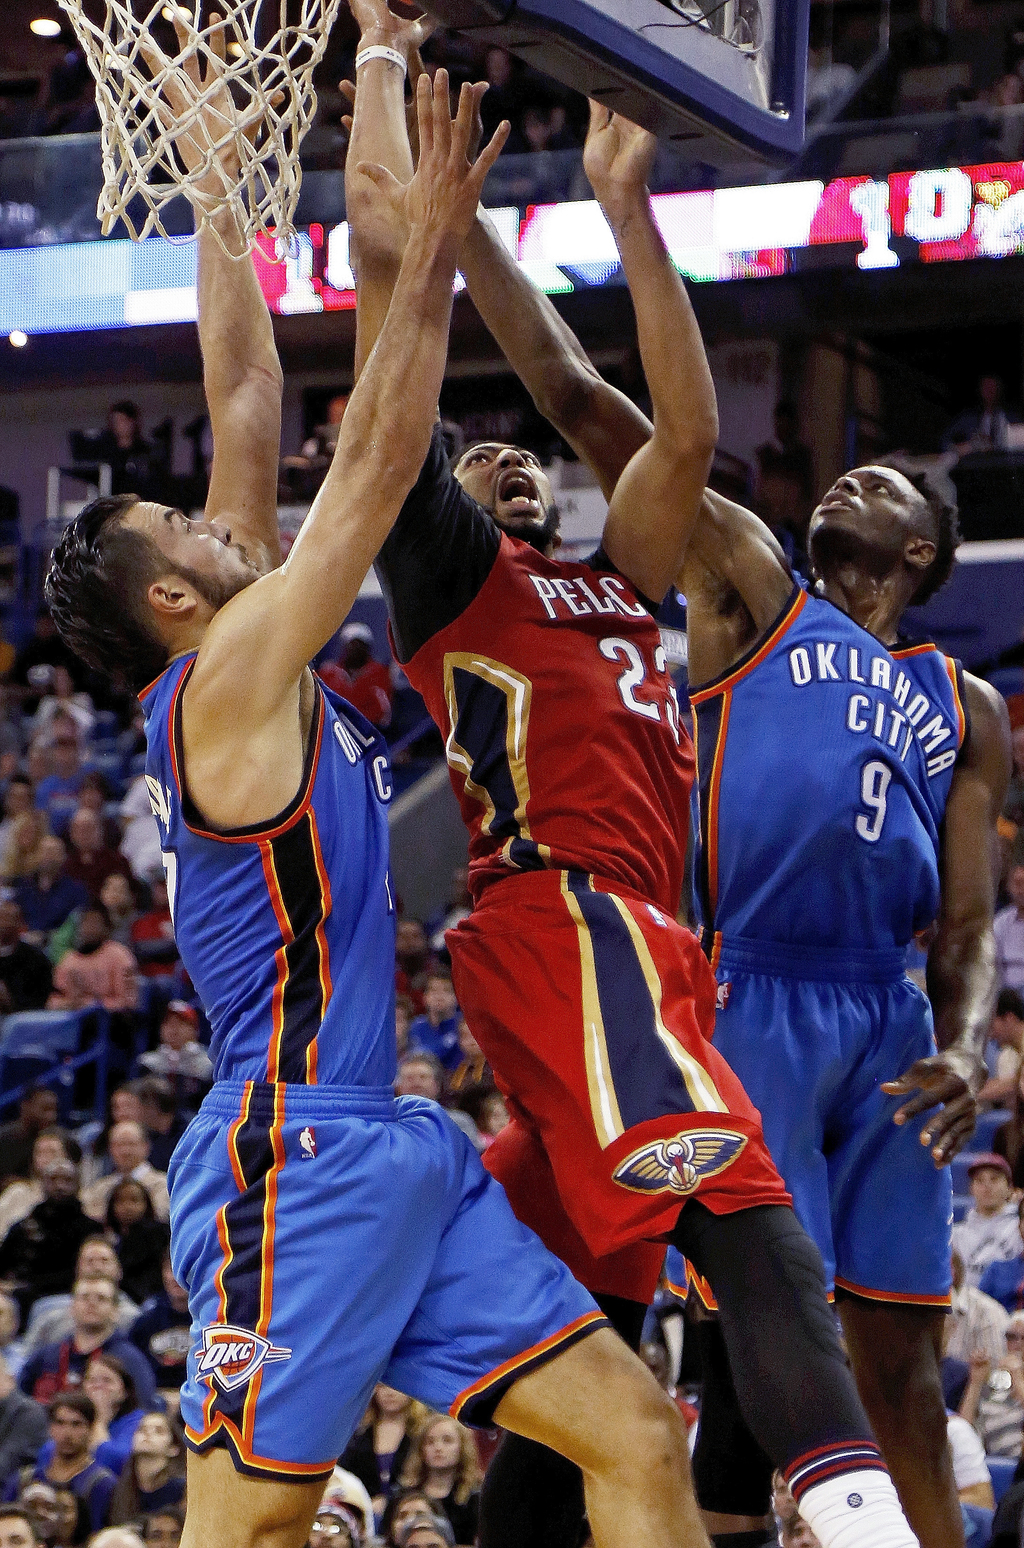 New Orleans Pelicans forward Anthony Davis, center, attempts to make a layup against Oklahoma City Thunder center Joffrey Lauvergne, le...